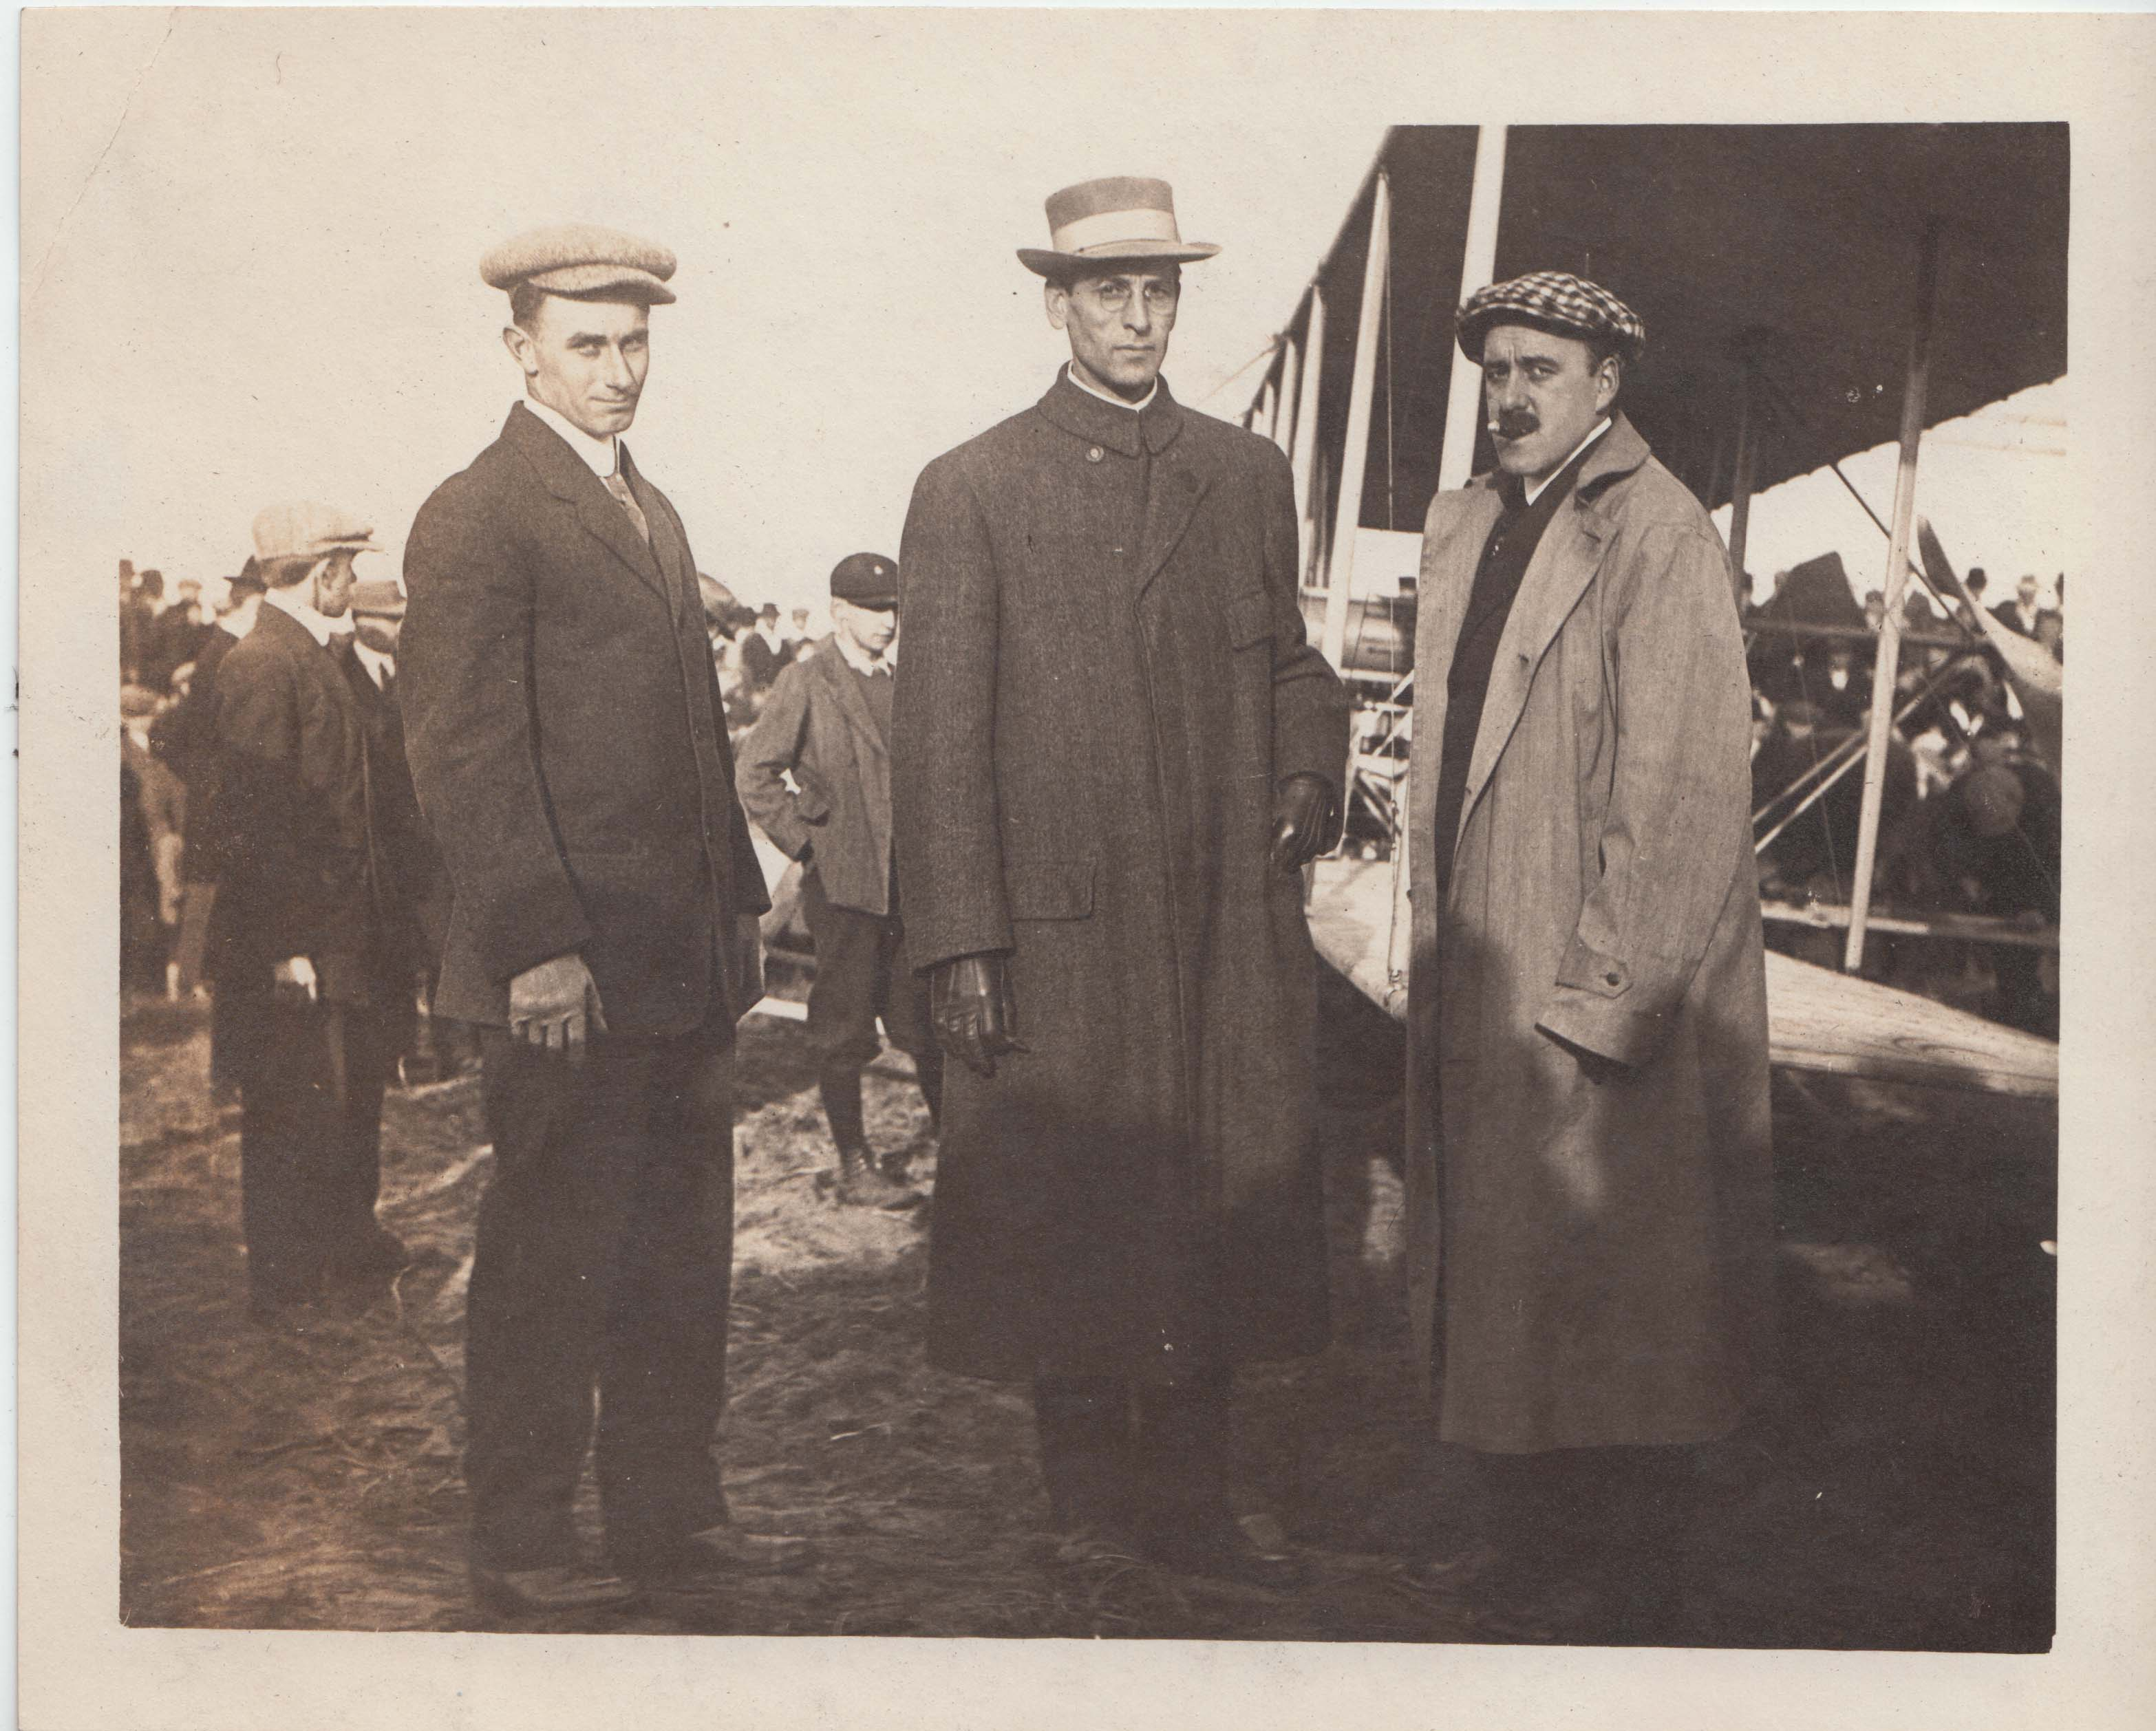 0402A Three Men near Airplane Atwood Estey Letter